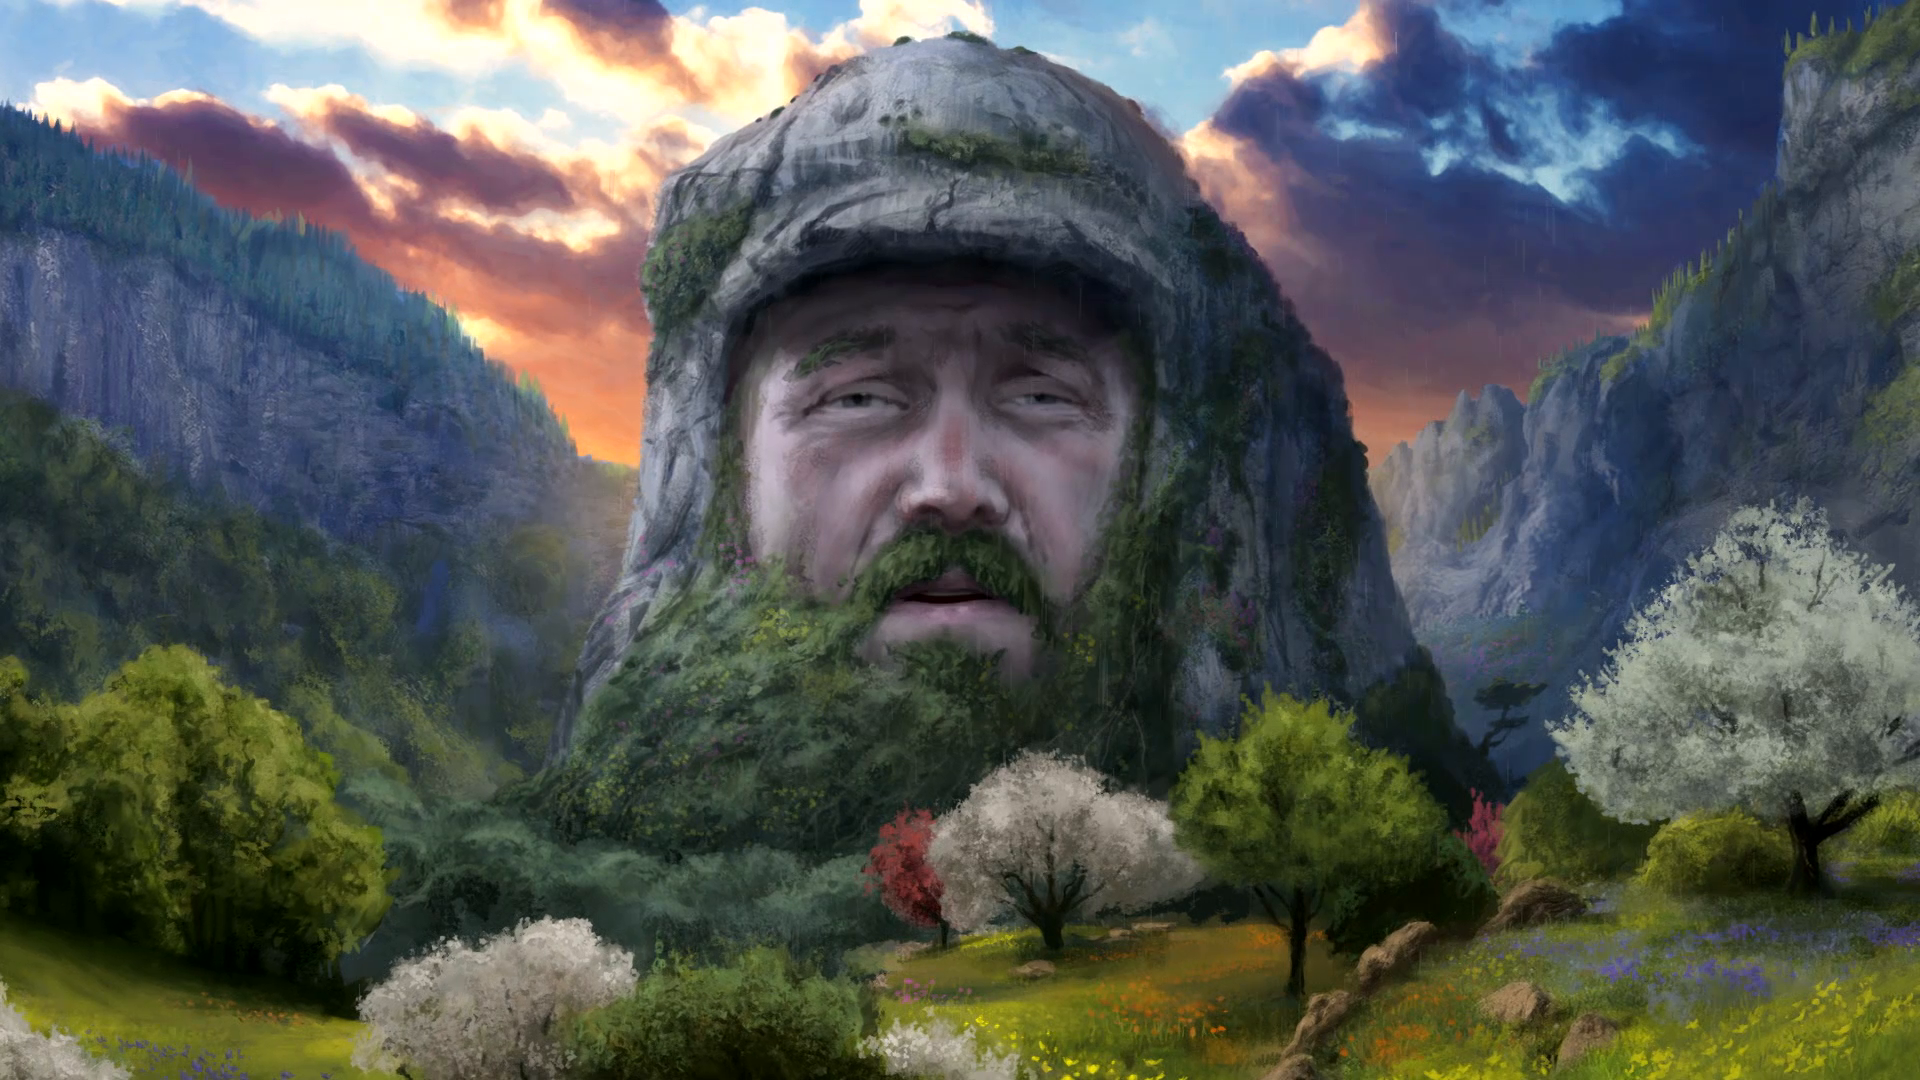 Thumbnail for Mountain Men: One with Nature